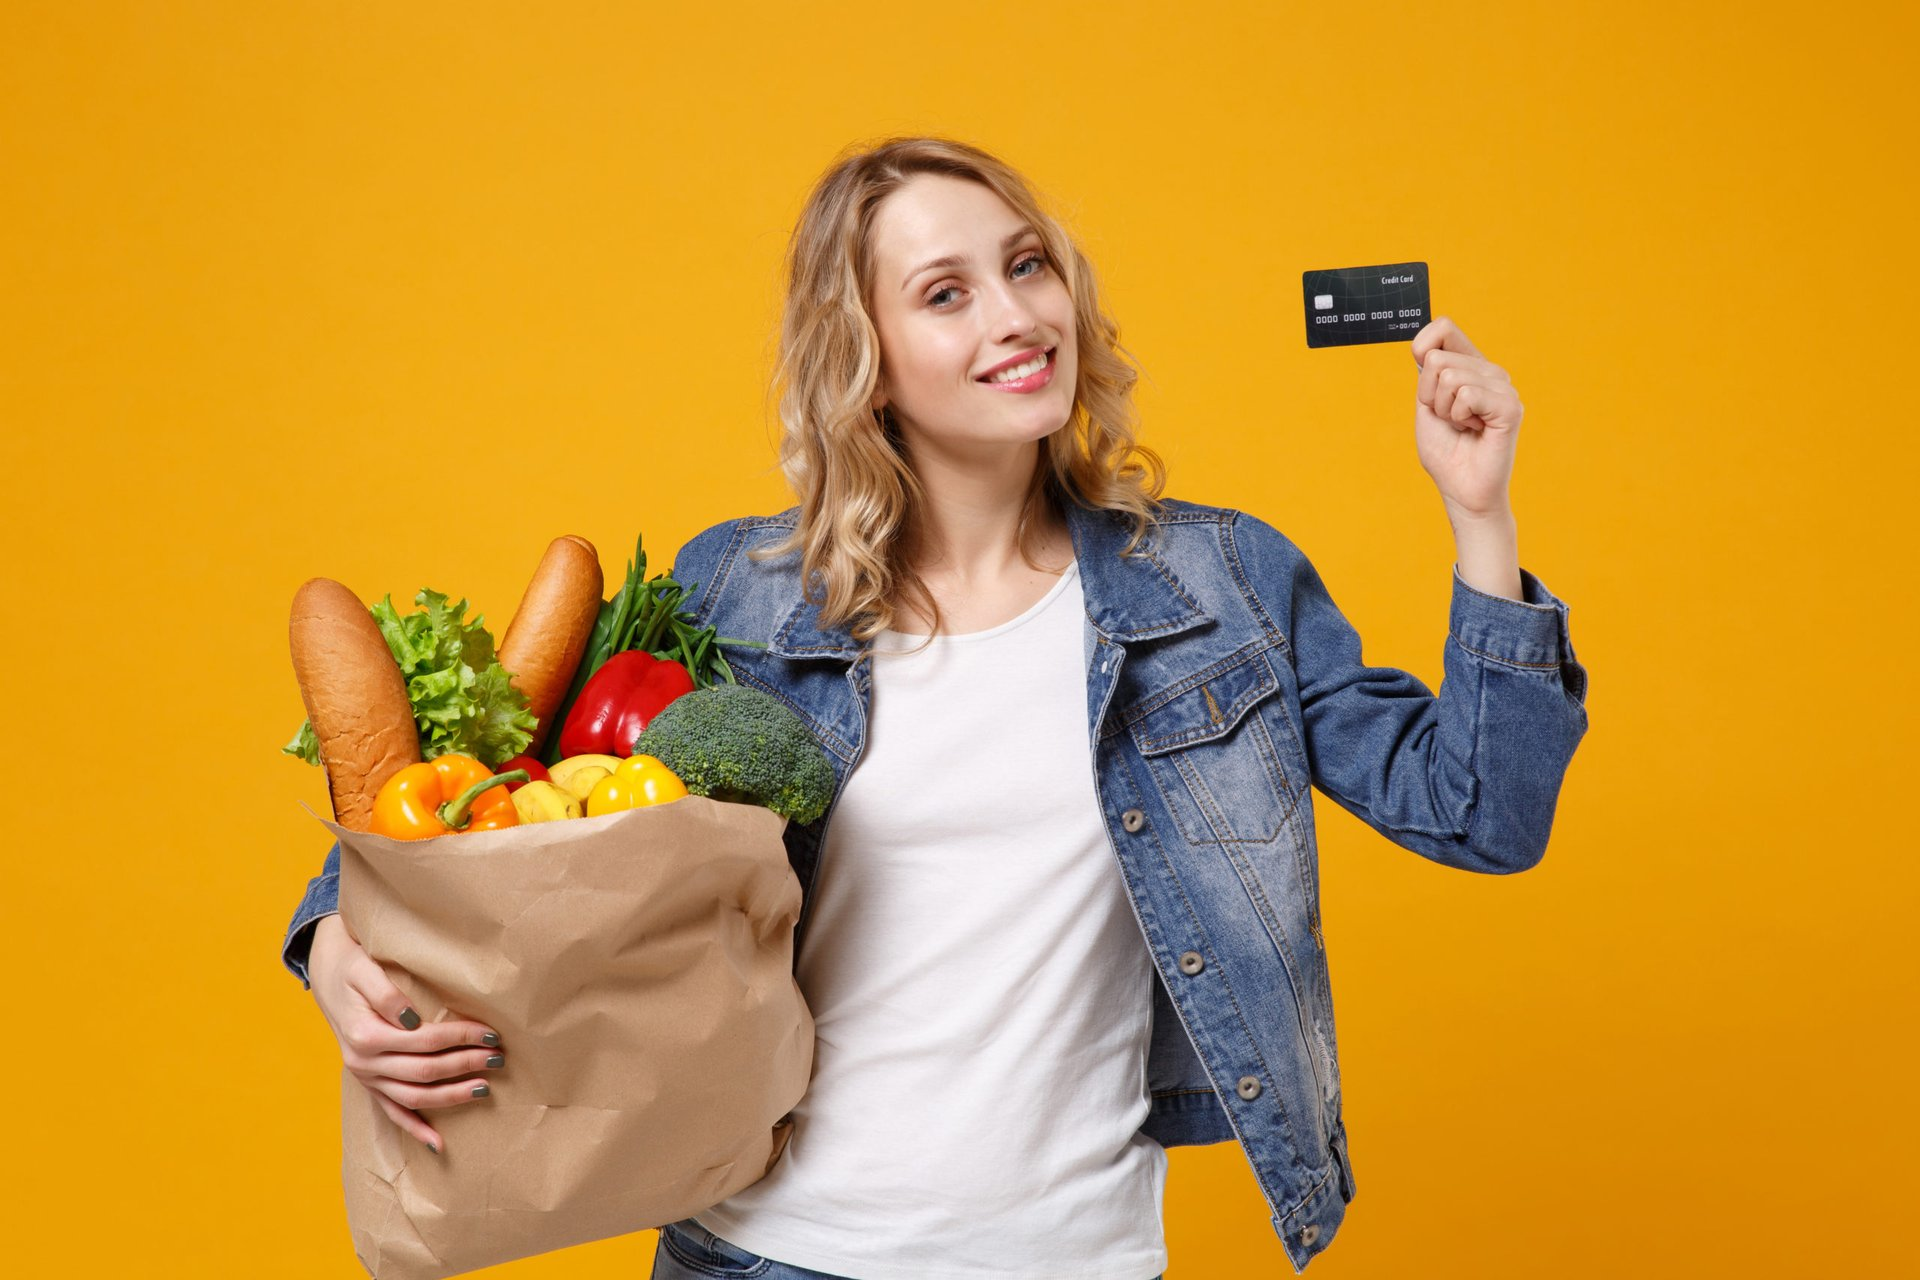 Woman excited about her groceries and credit card rewards